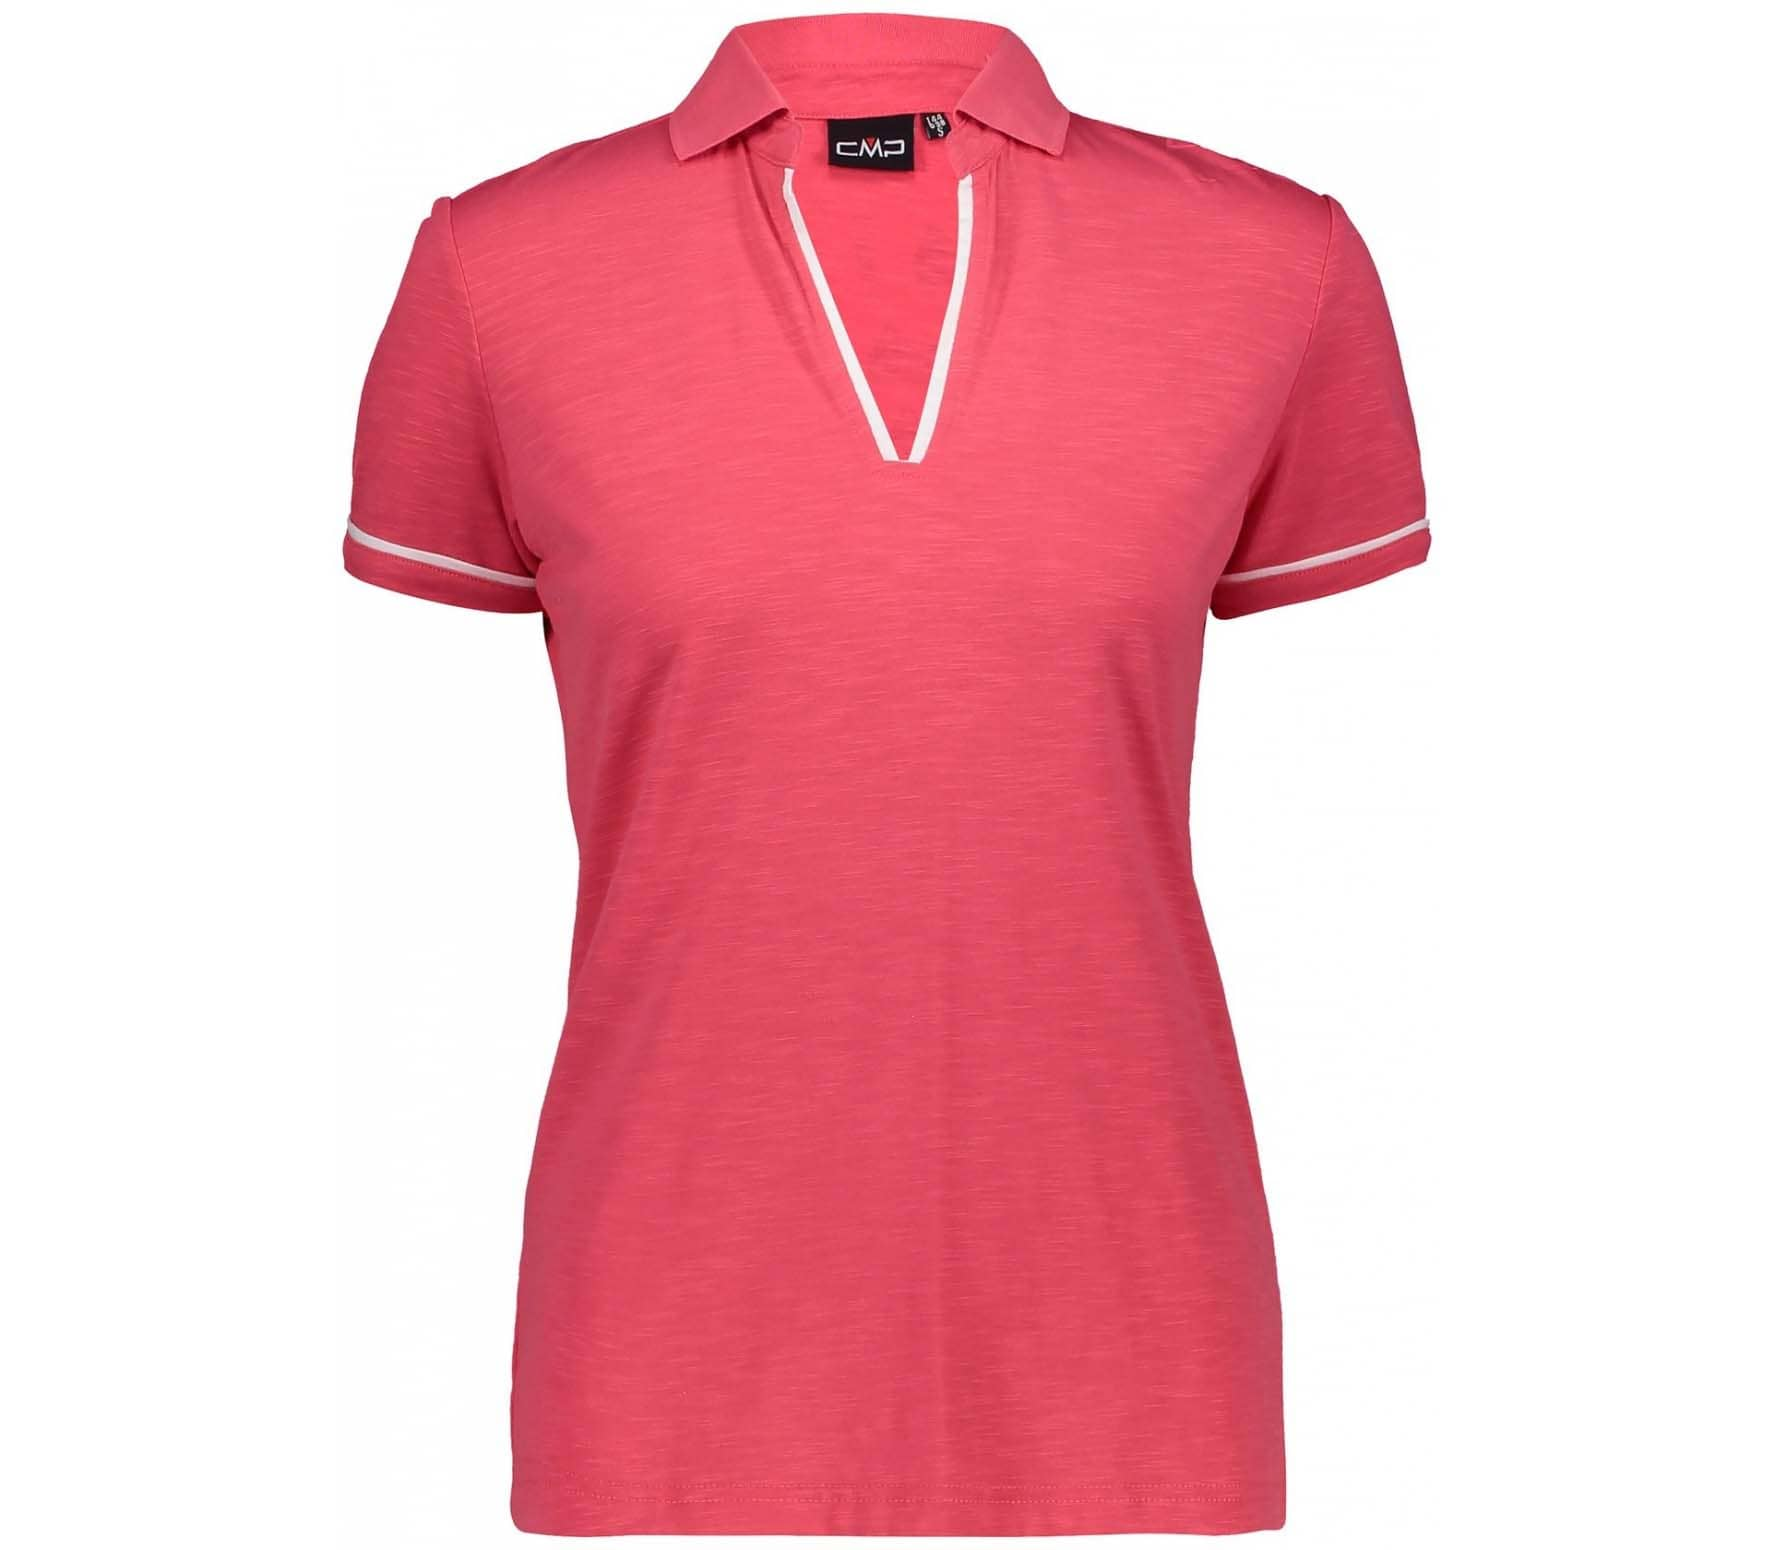 CMP - Women's polo shirt (red)